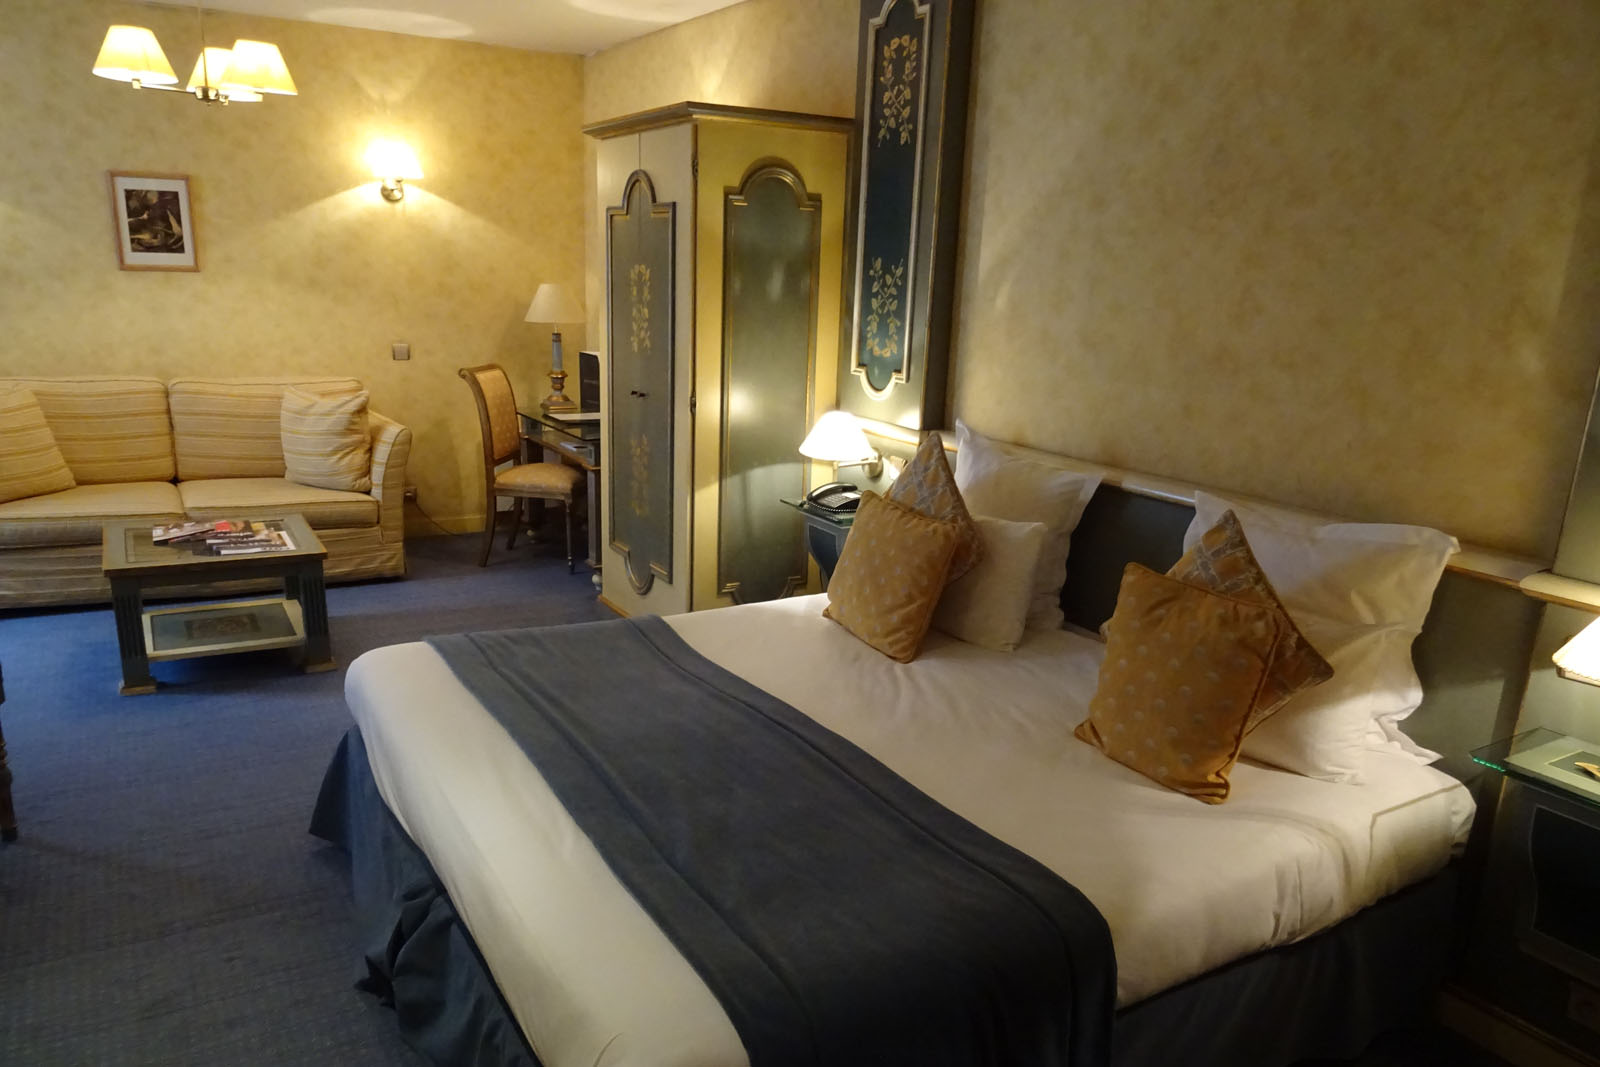 02 Unsere Junior Suite in der Villa Beaumachais